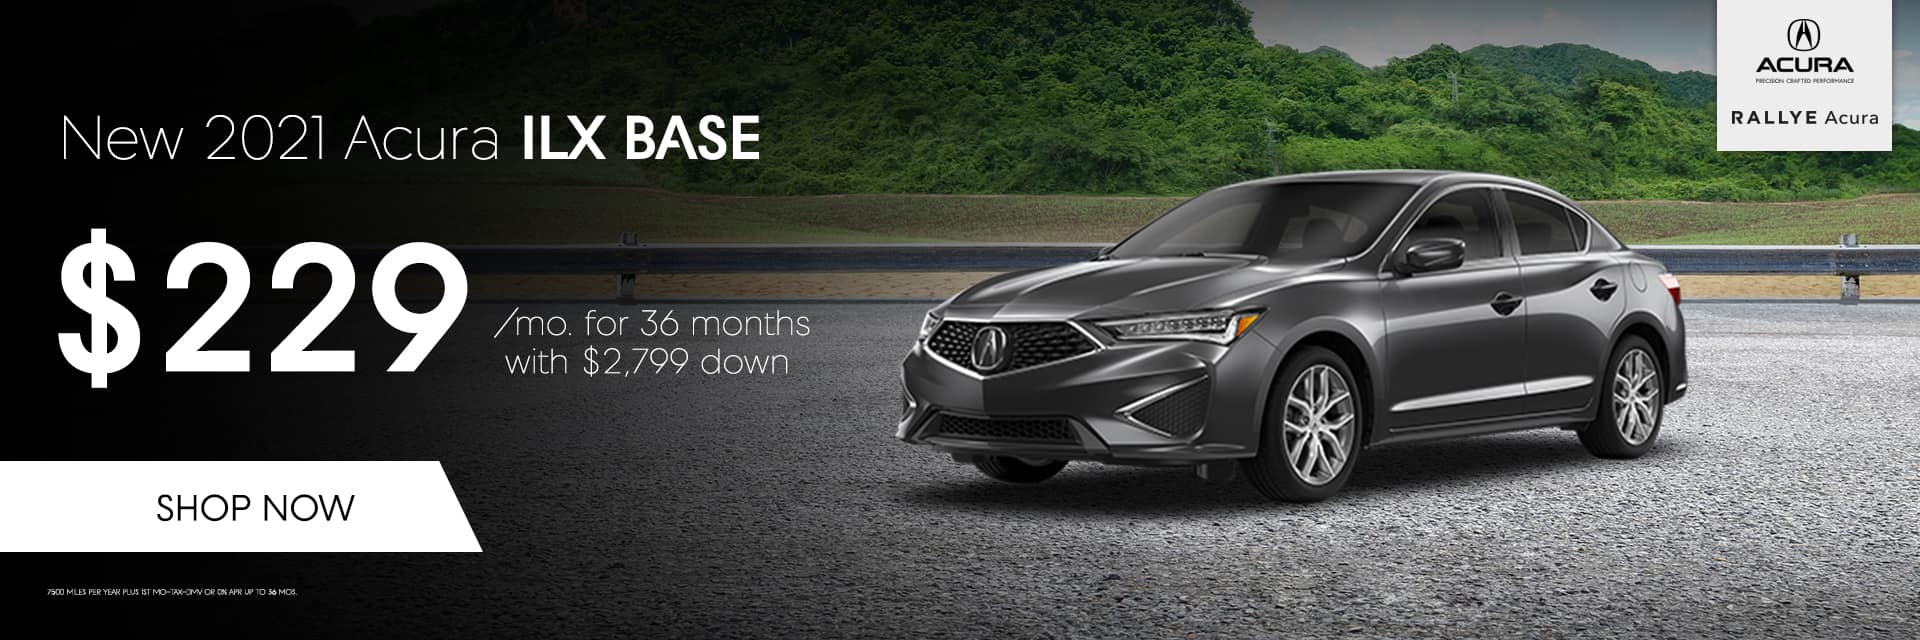 2021 ACURA ILX BASE. $229/mo. for 36 months with $2,799 down.